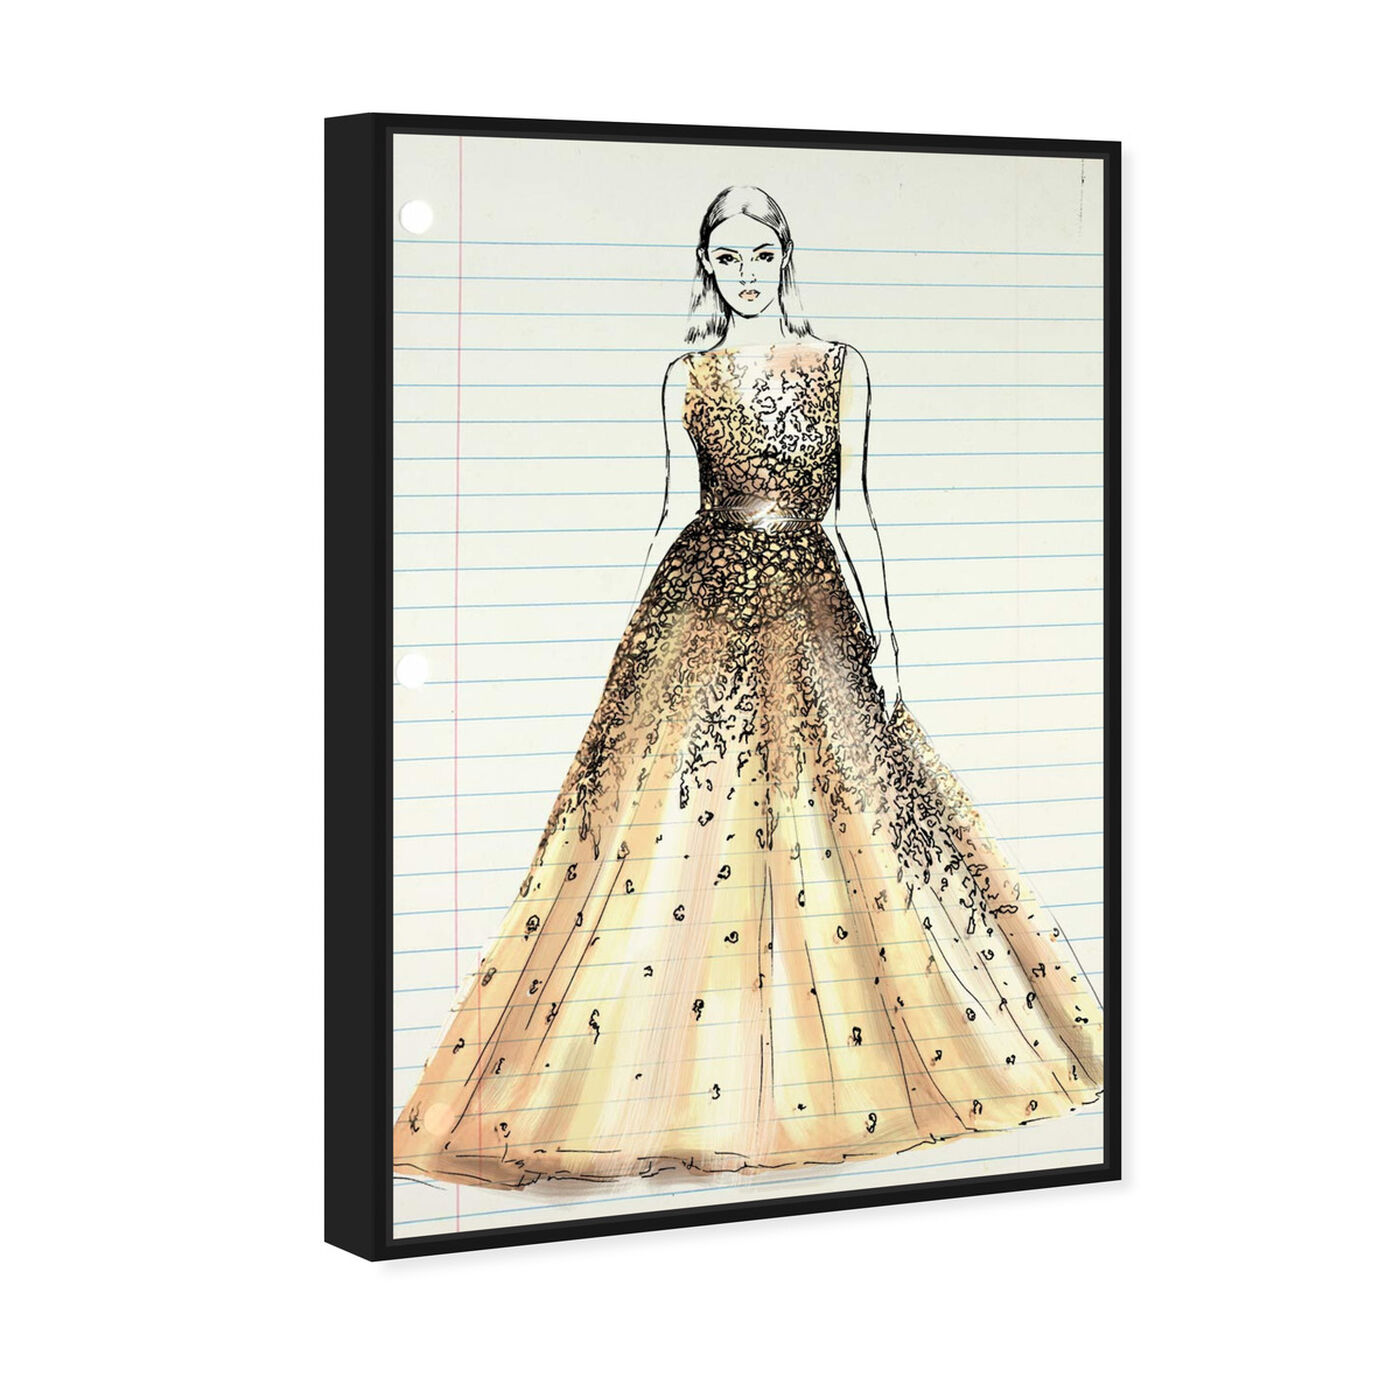 Angled view of Fashion Letter featuring fashion and glam and dress art.